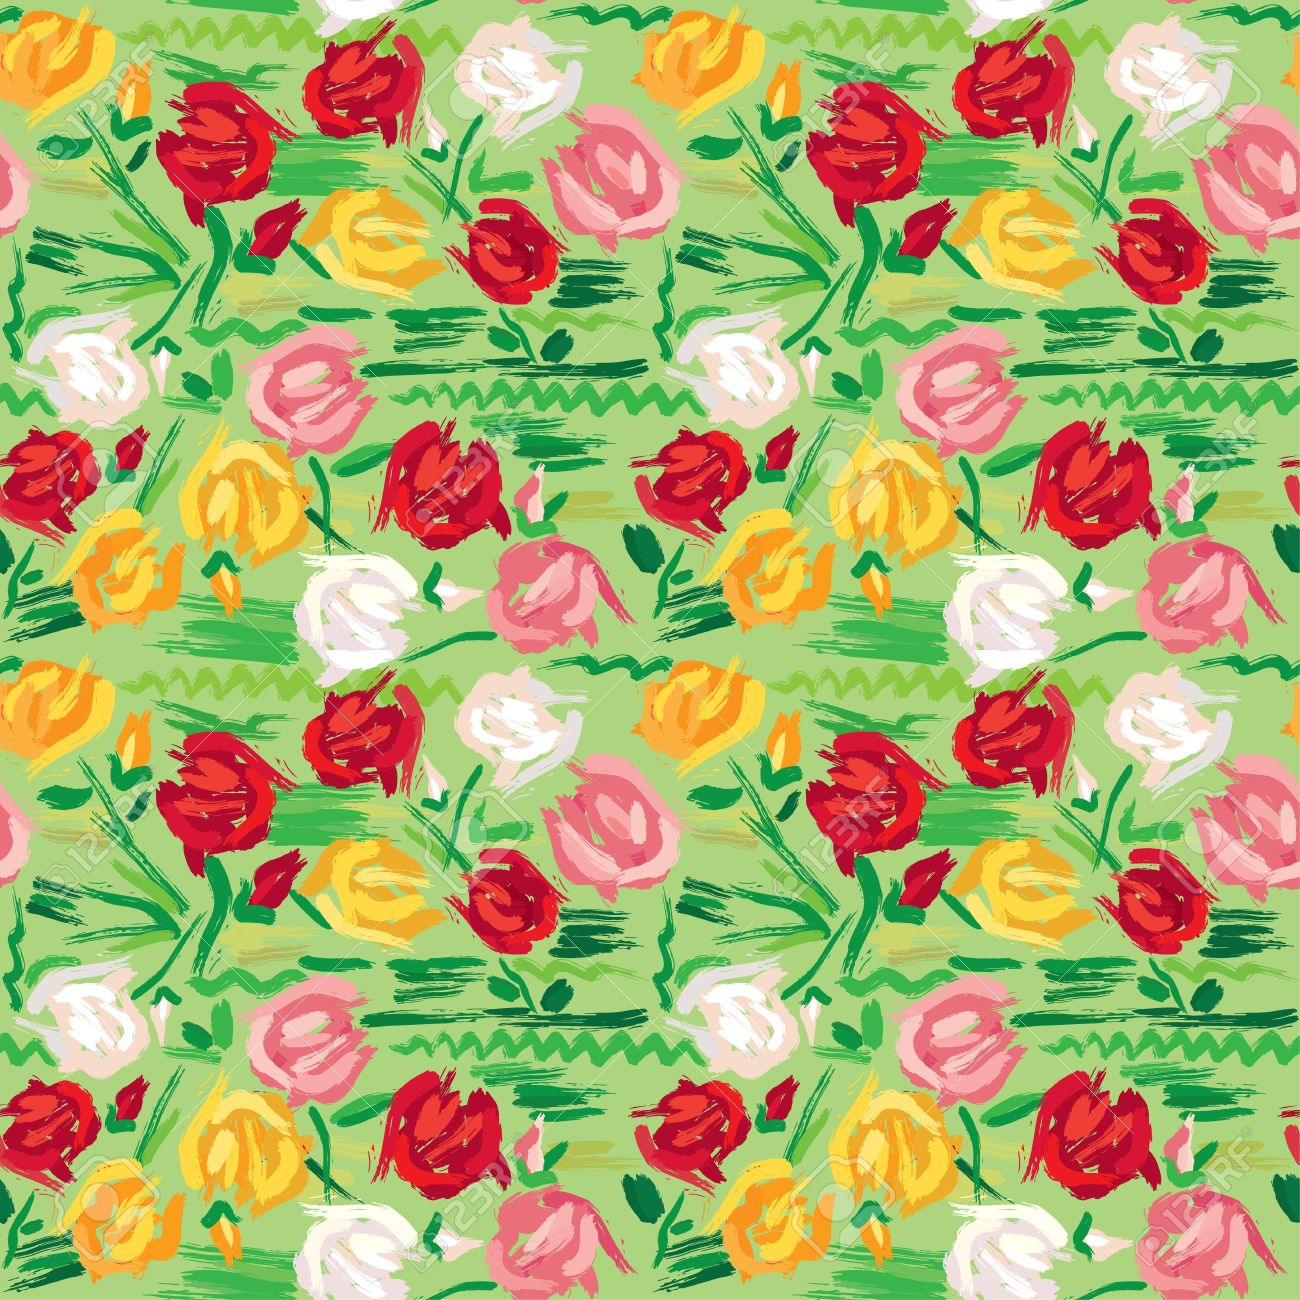 Hand painted roses seamless pattern in pink, red, white and yellow tones on green background Stock Vector - 18270874